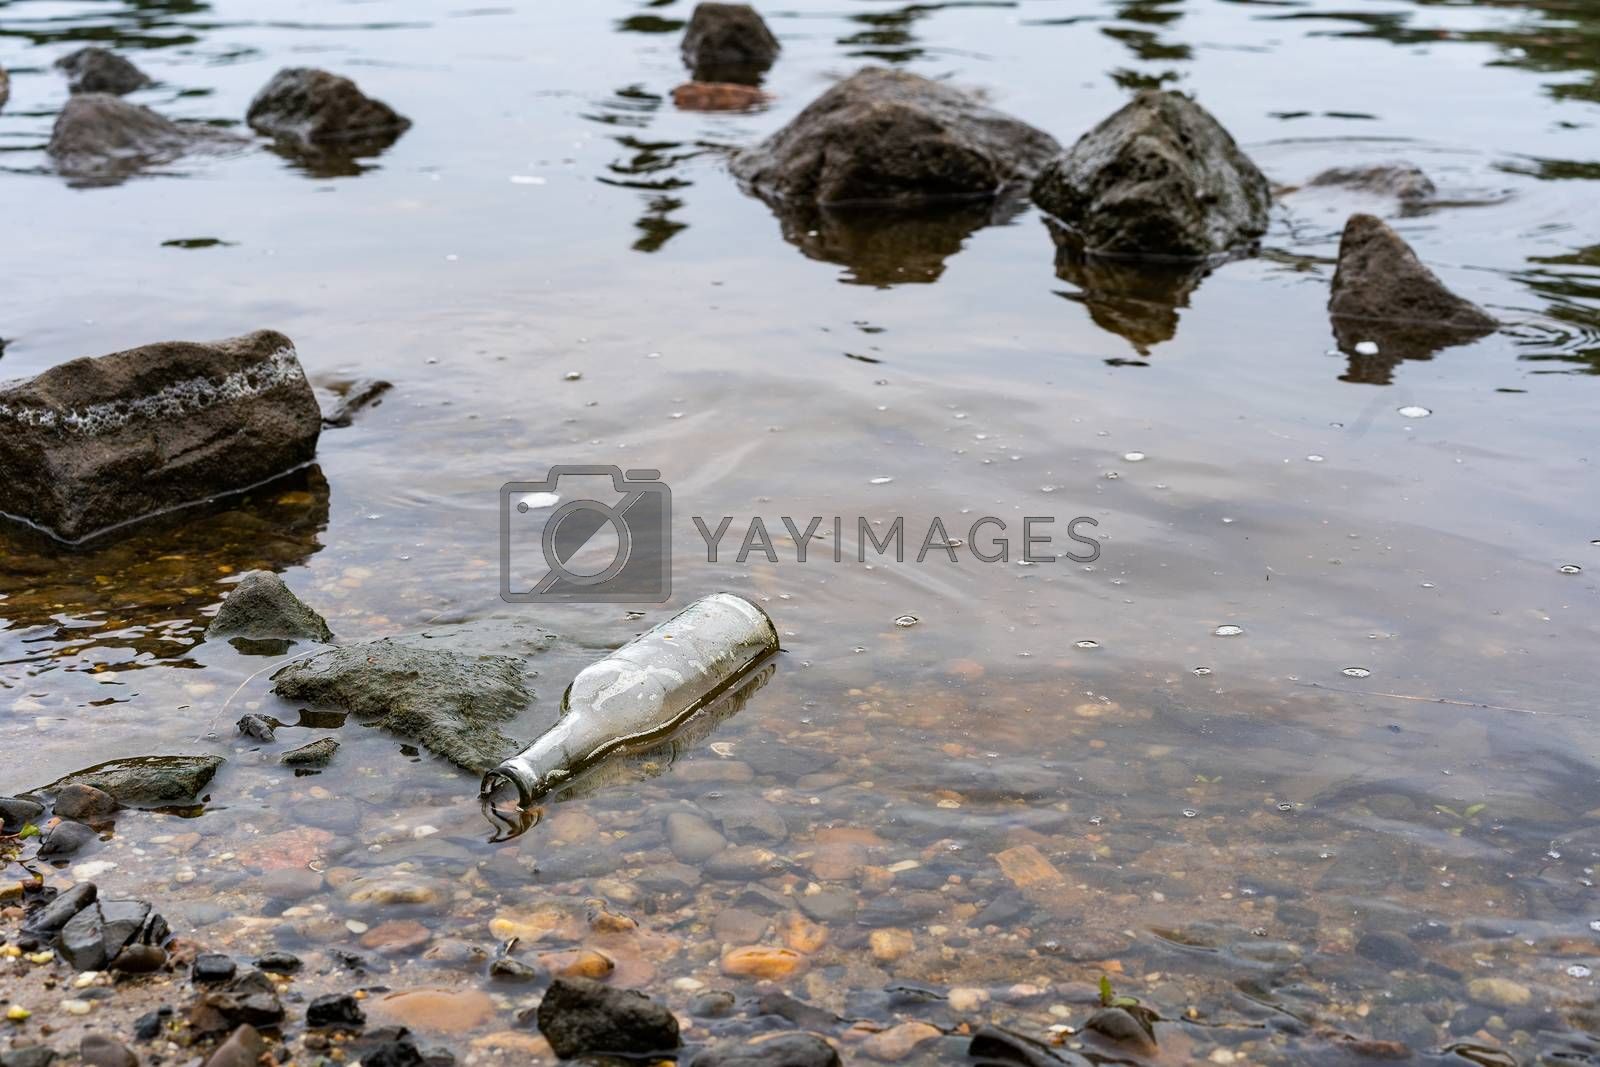 A clear bottle lies in the river as litter polluting the environment.